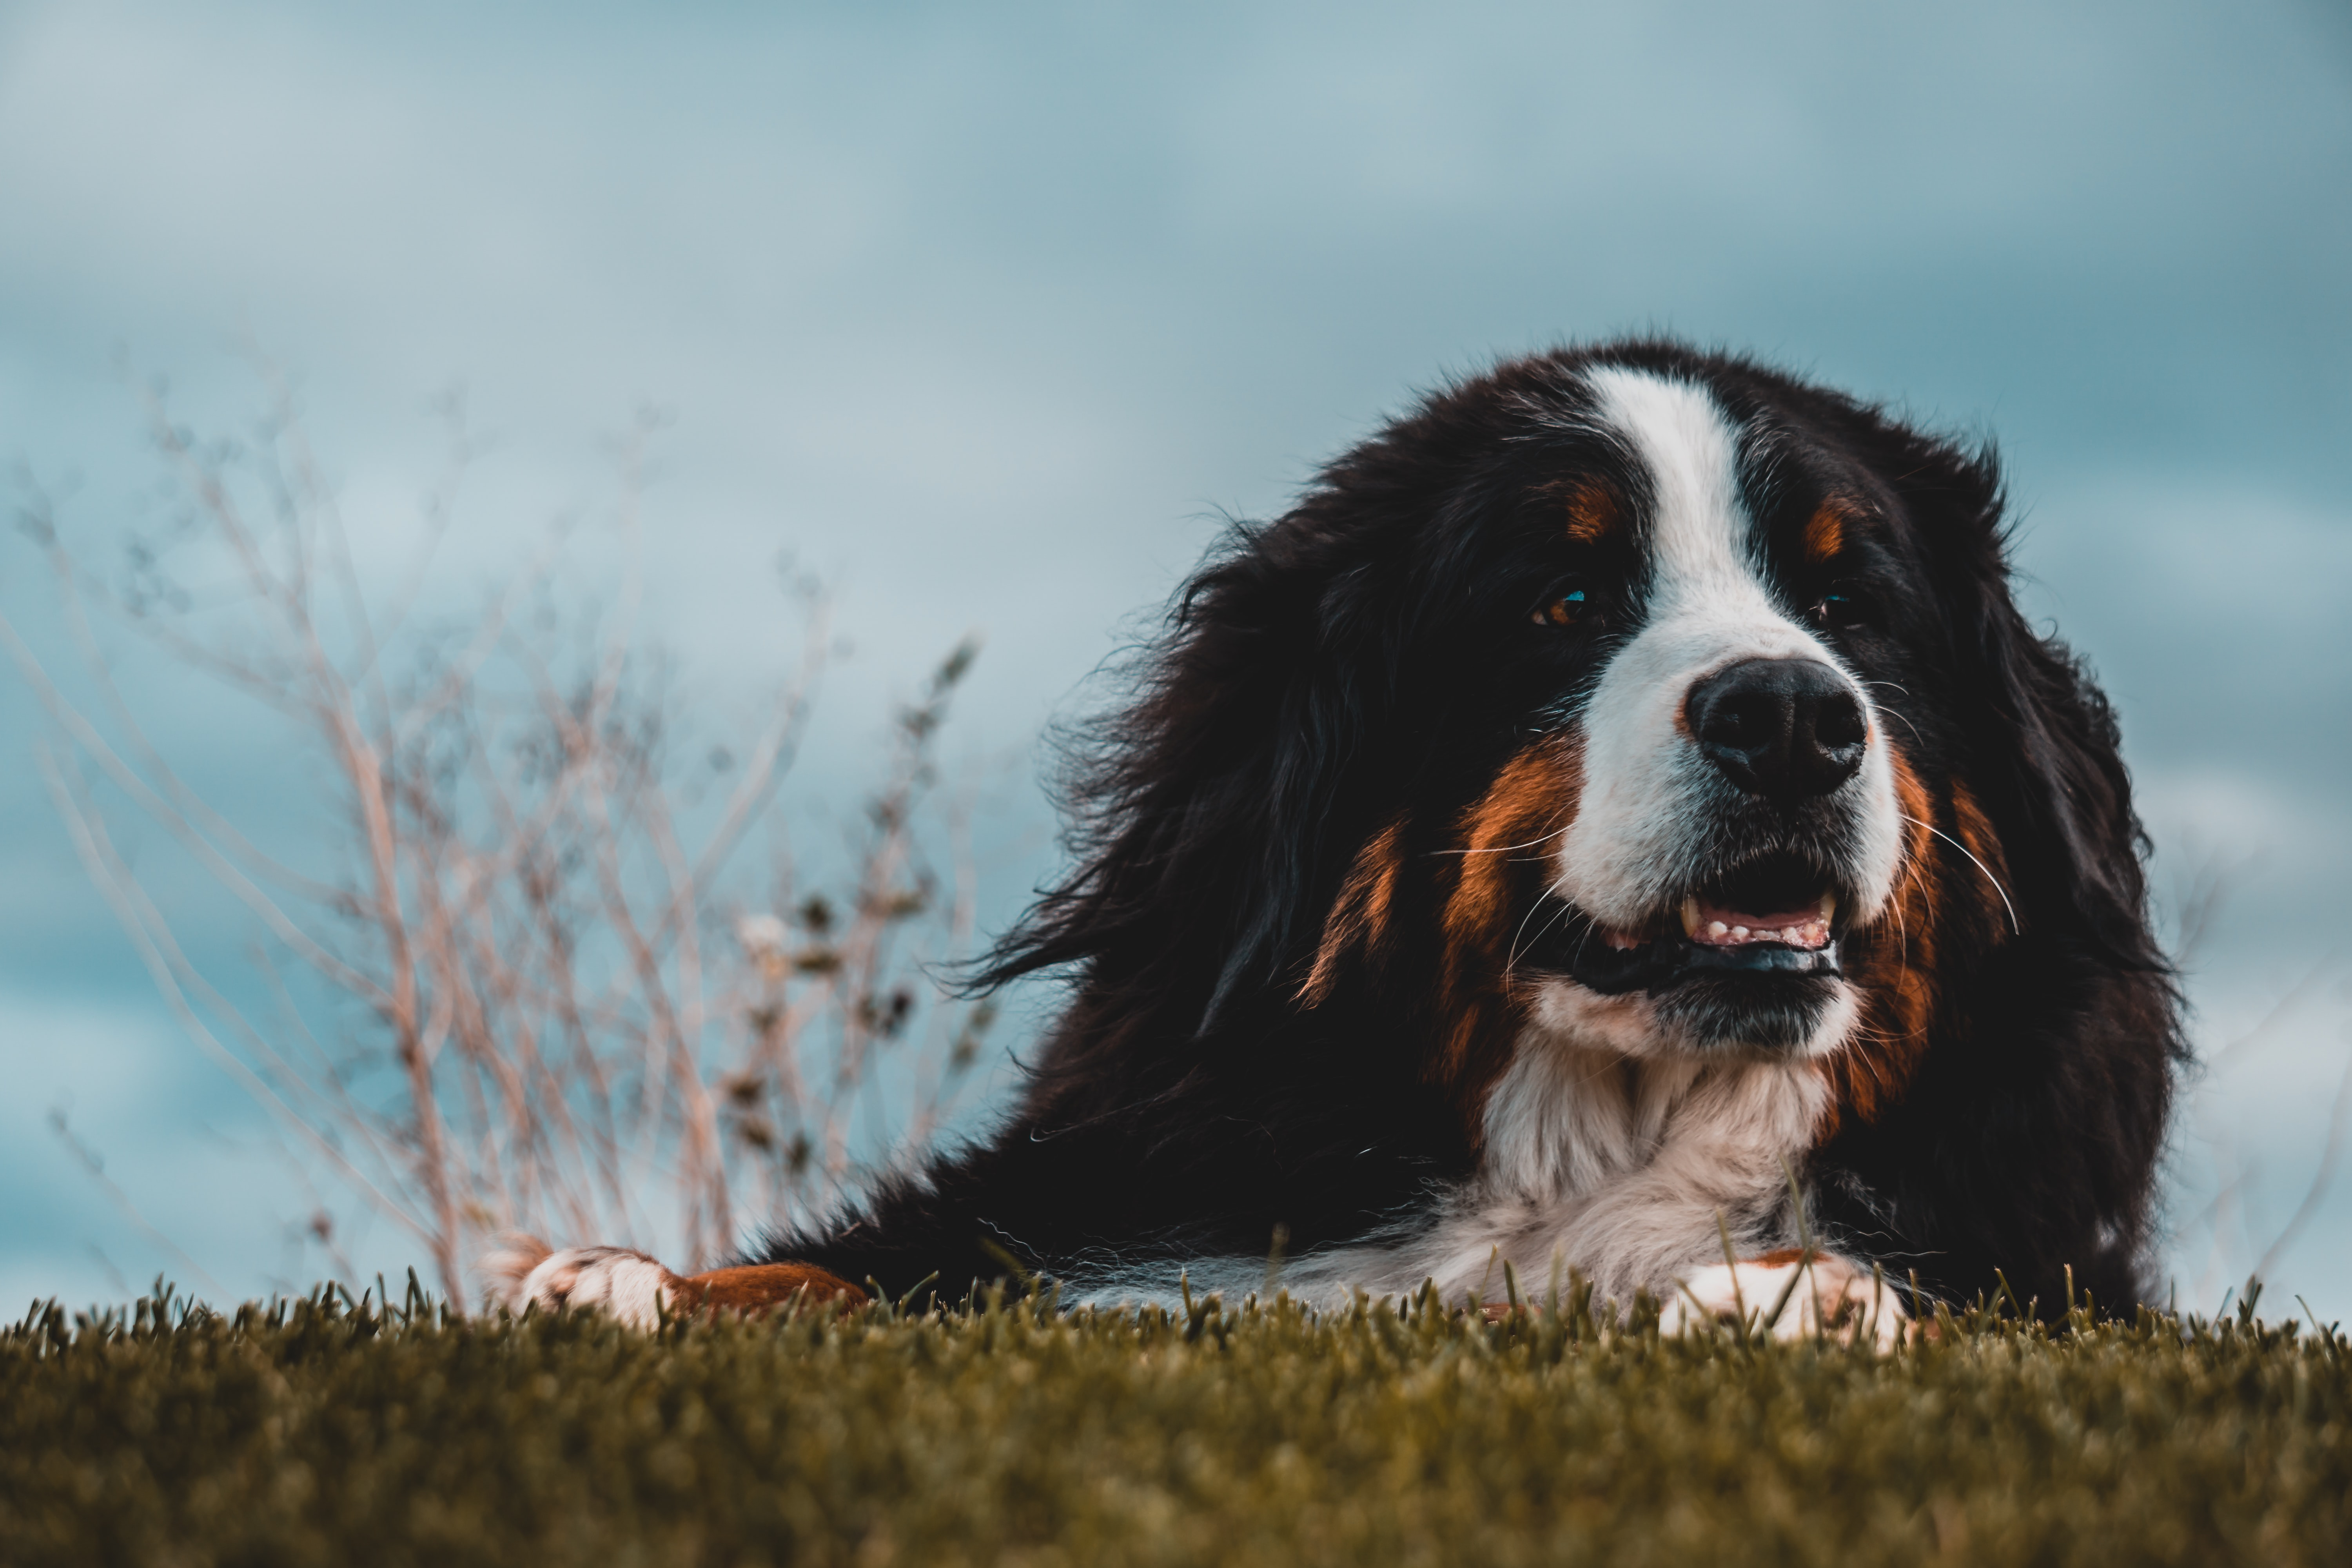 adult greater Swiss mountain dog lying on green grass under blue sky during daytime